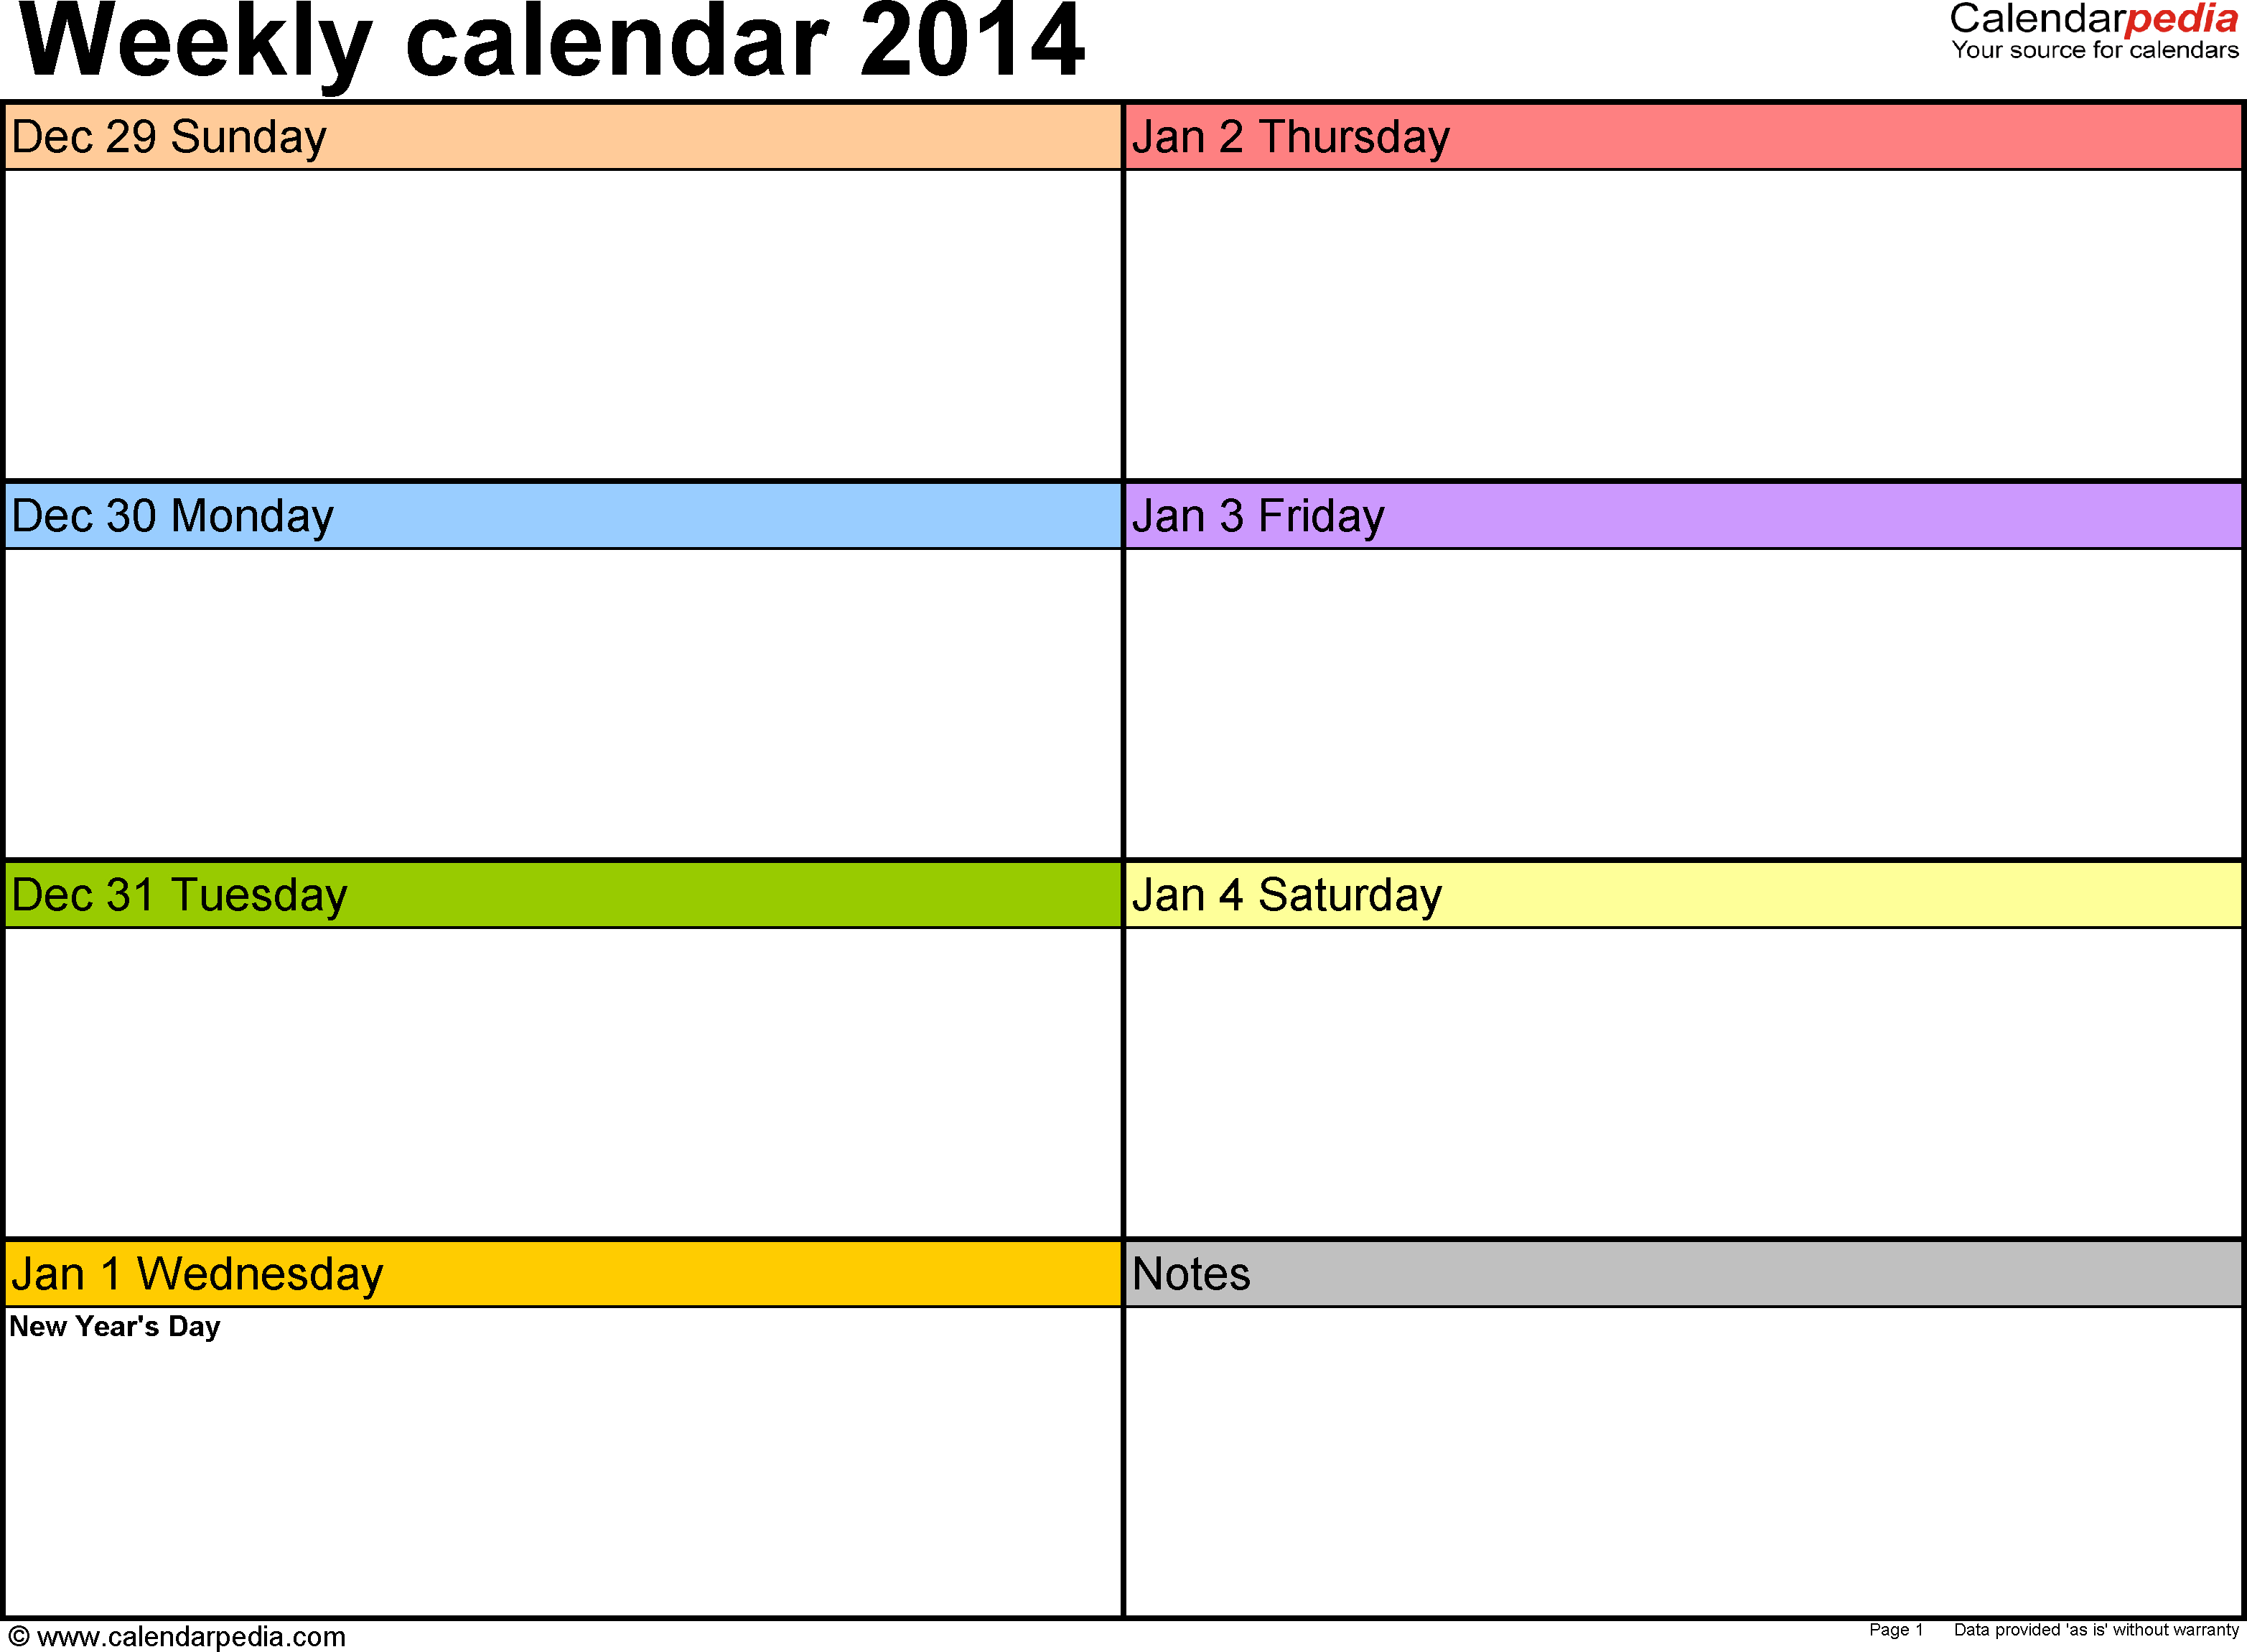 Weekly Calendar 2014 For Word - 4 Free Printable Templates in 2 Week Schedule Template Mon- Sunday